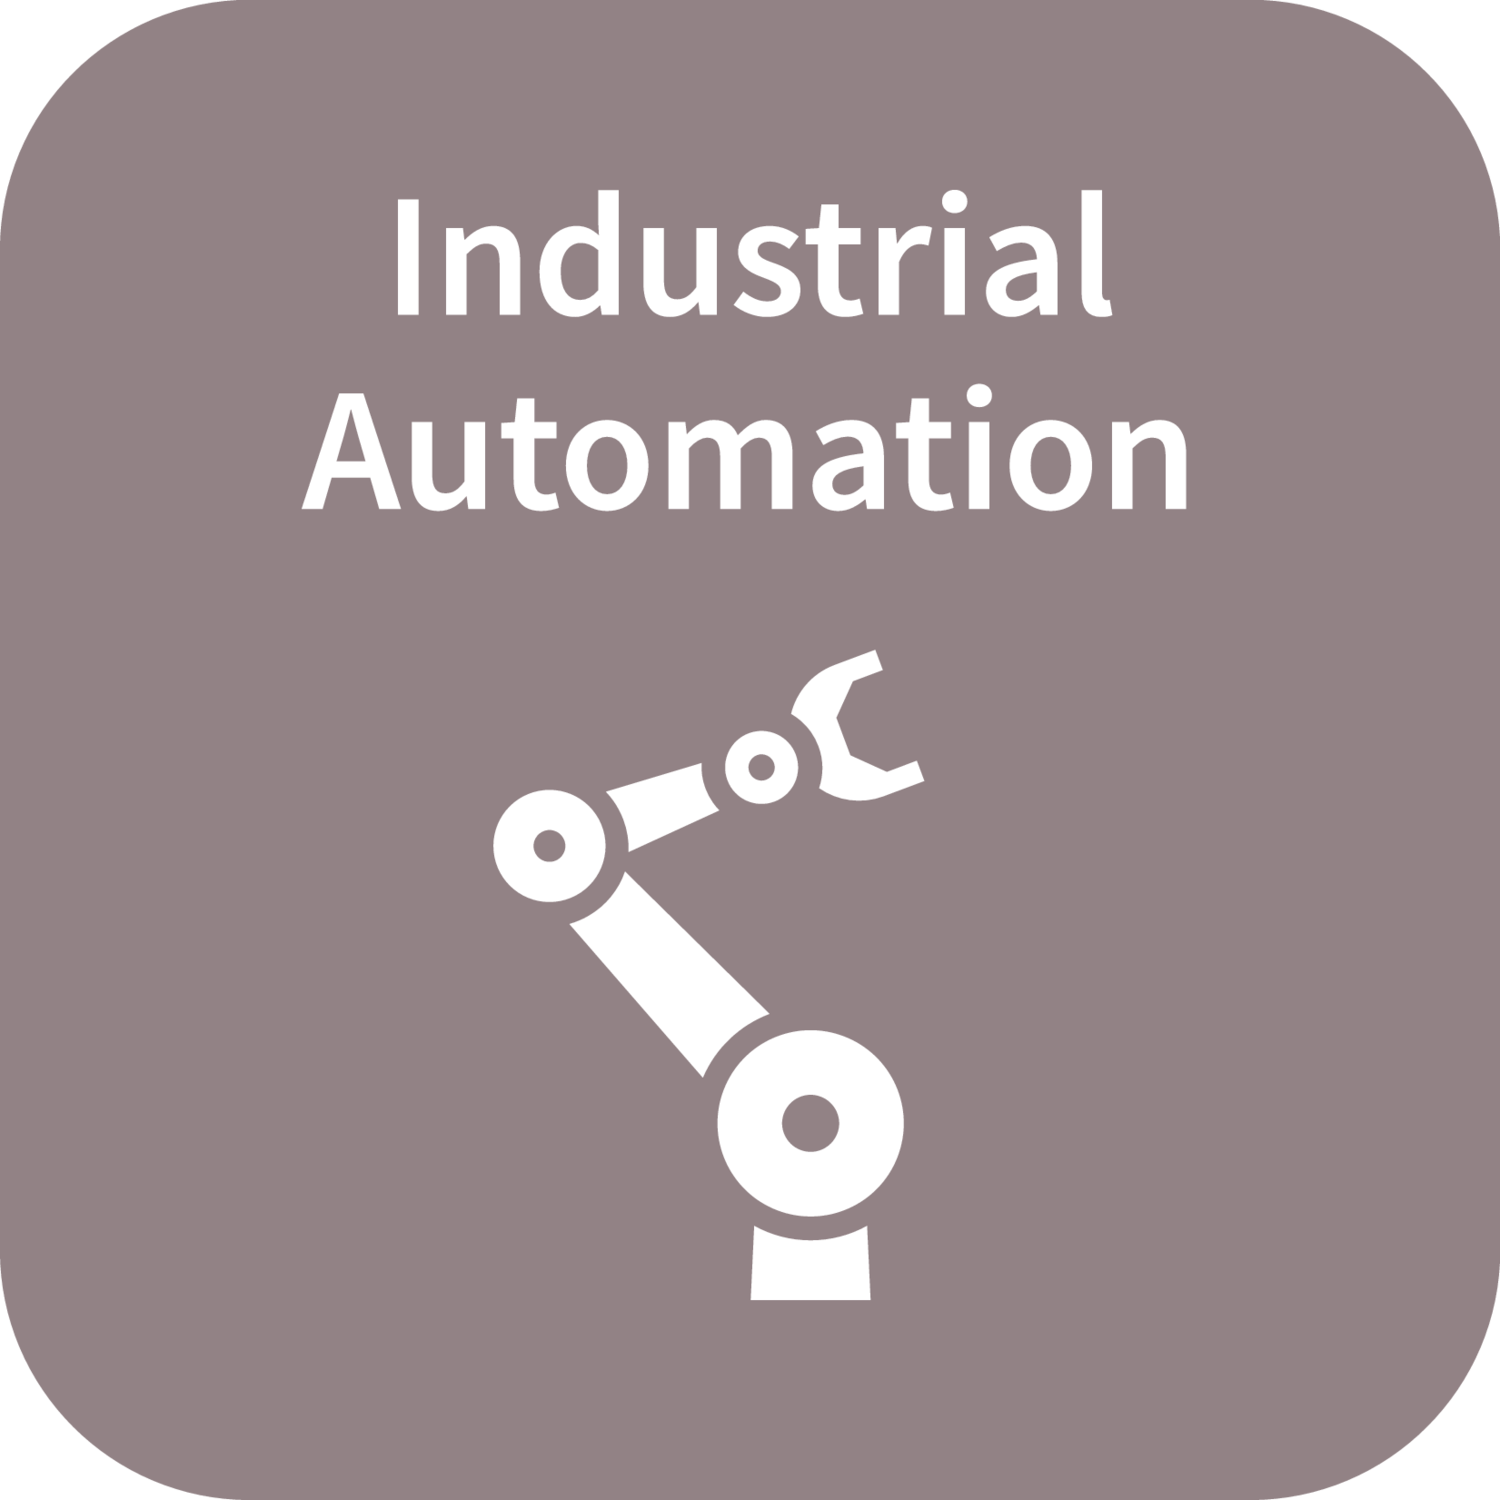 Industrial Automation Training Course Fees Advance